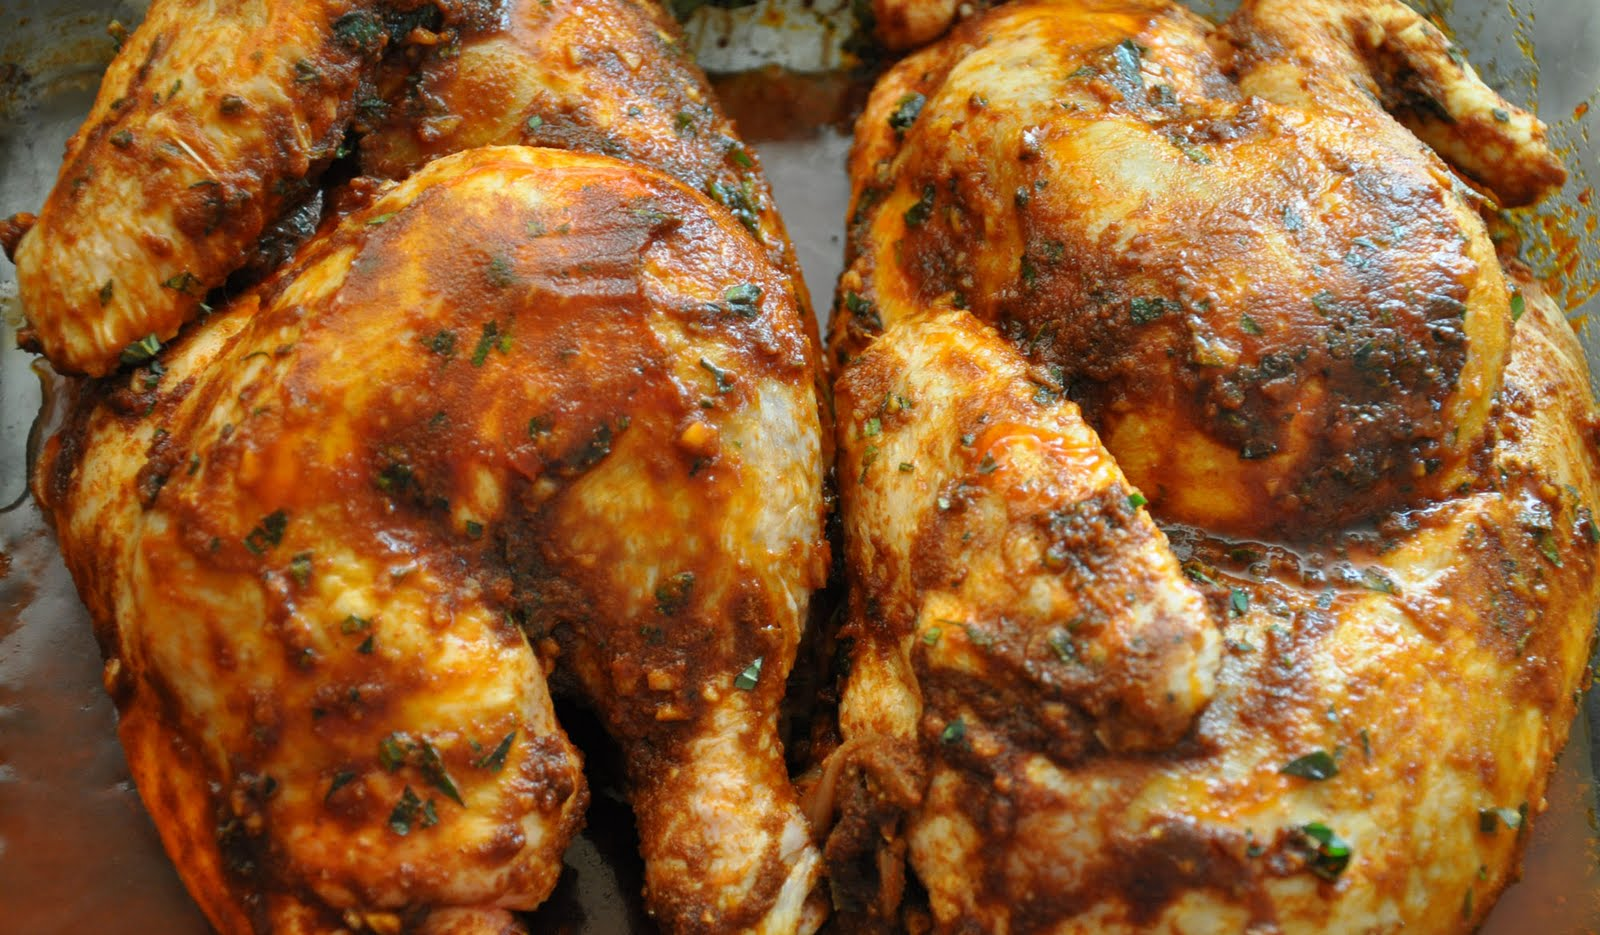 Fire and Food: Ben's Peri-Peri Chicken in the Weber